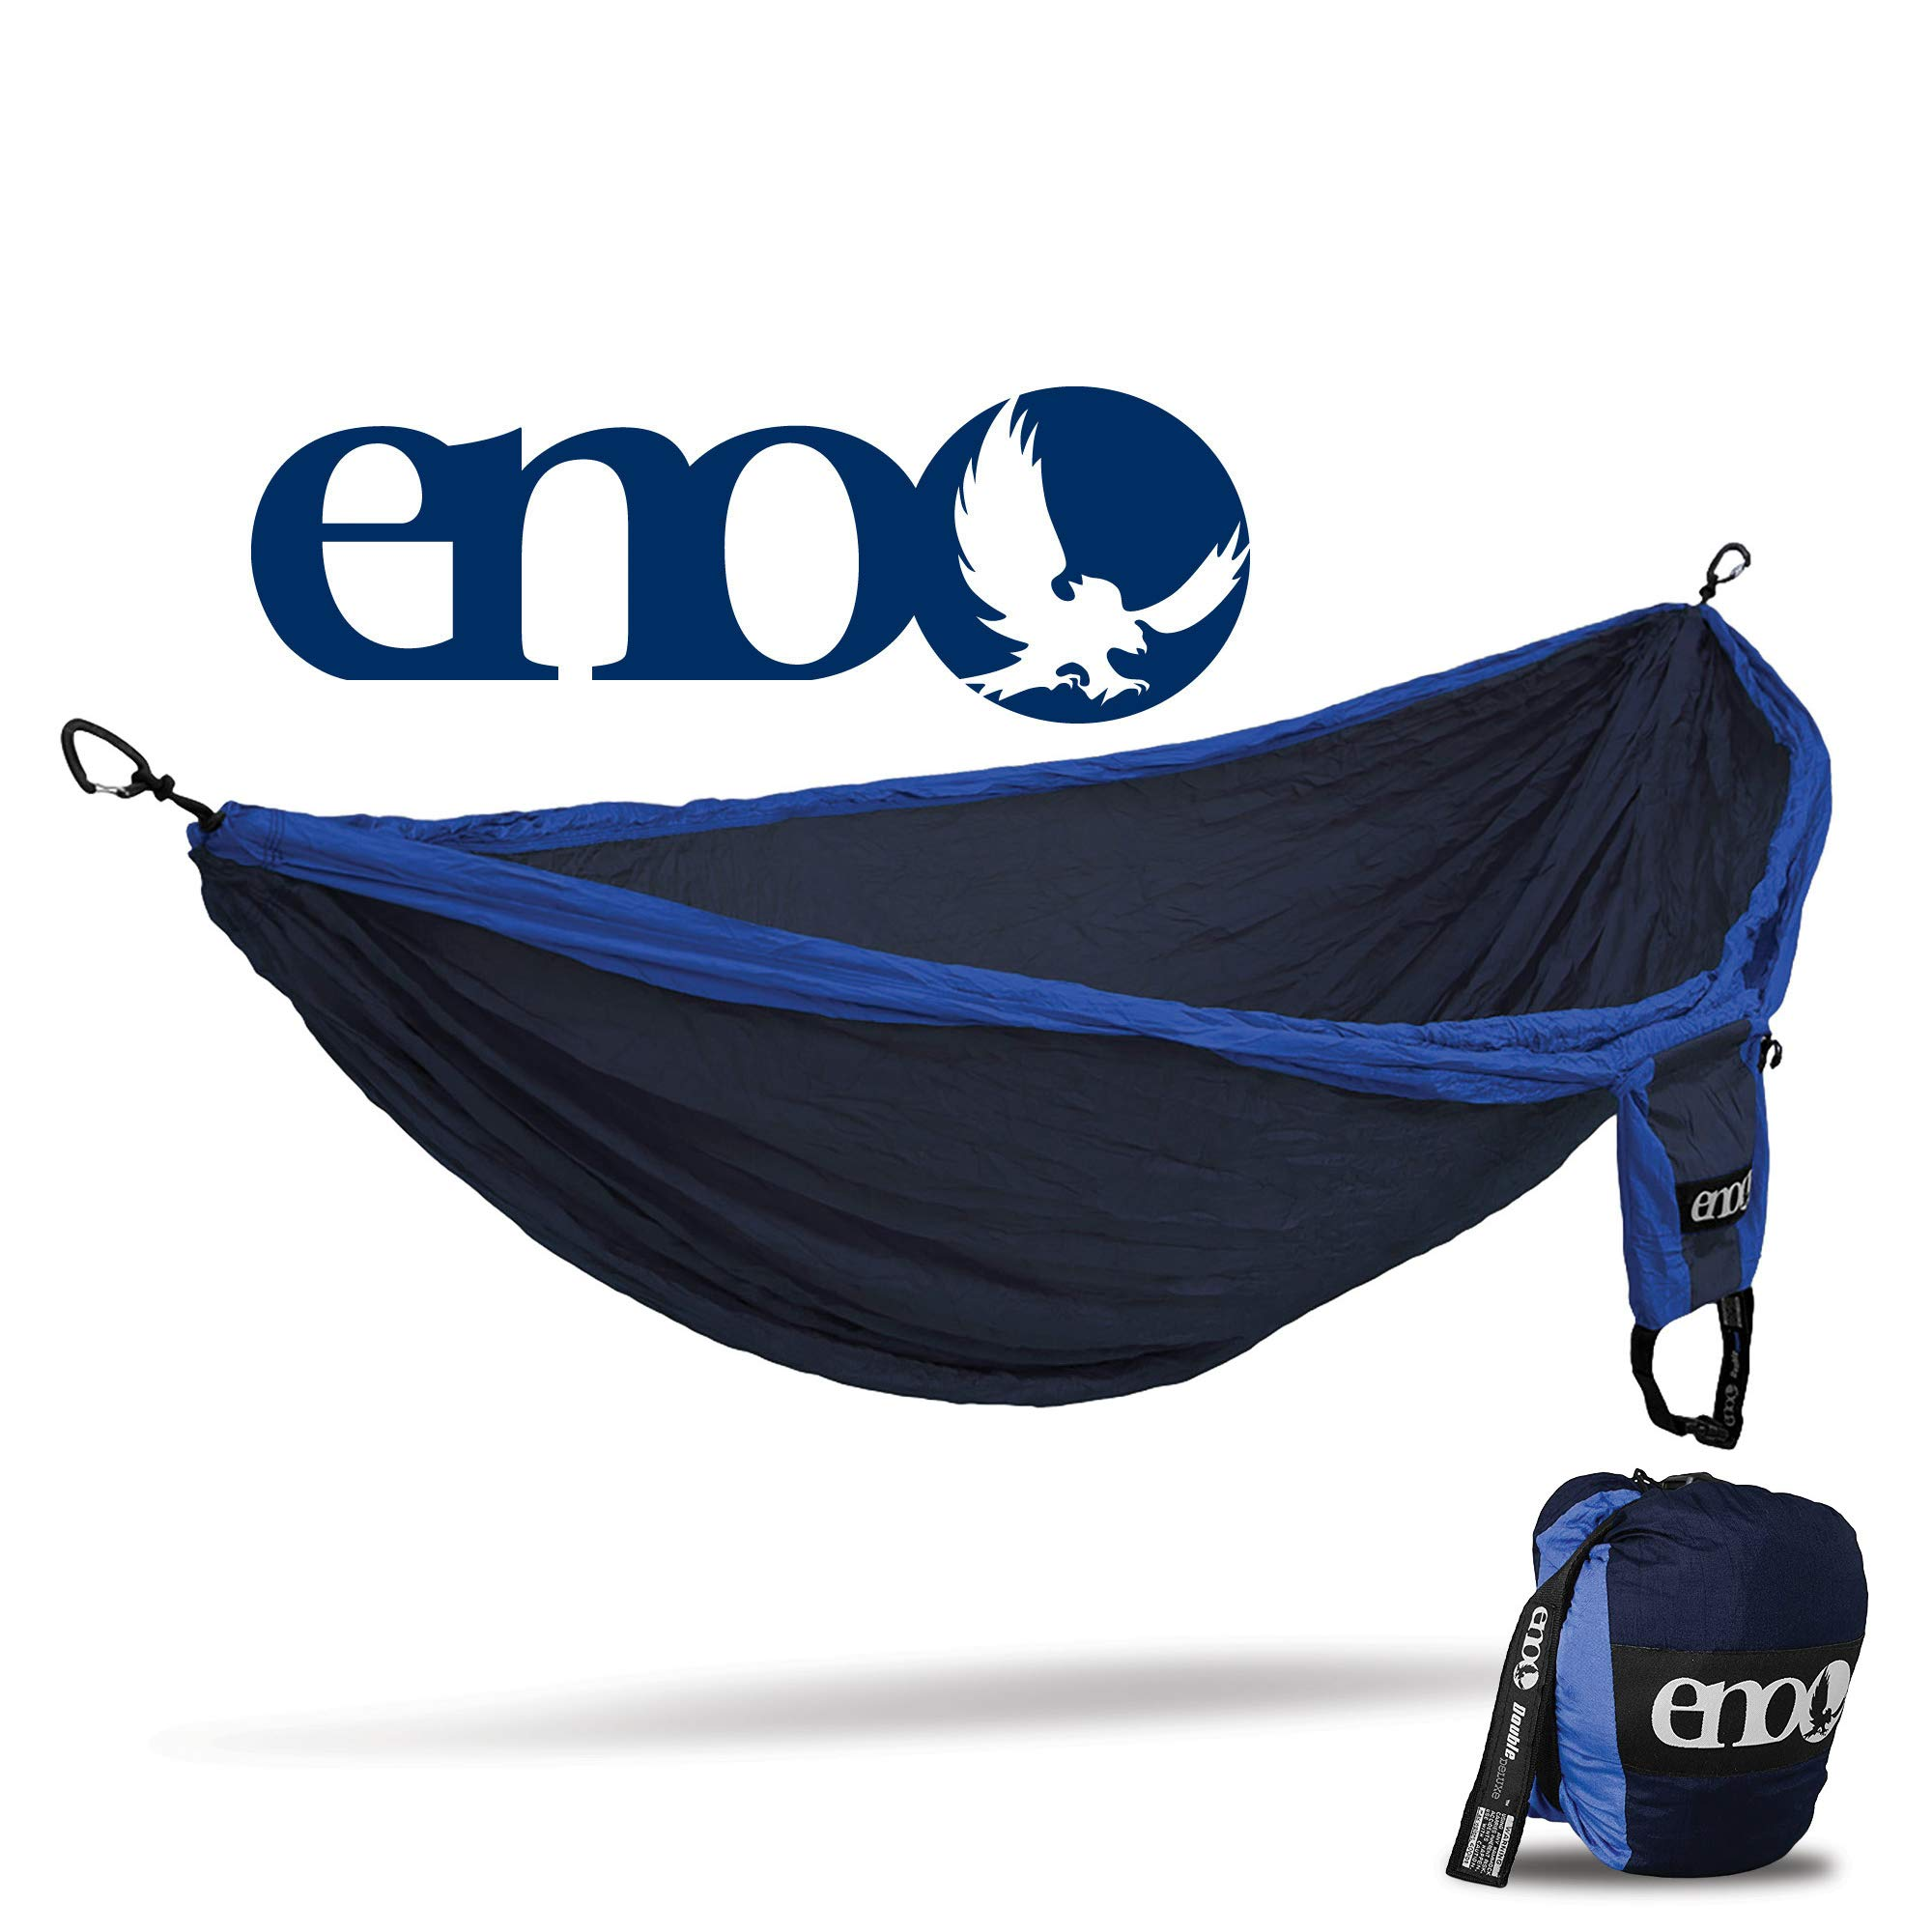 ENO - Eagles Nest Outfitters Double Deluxe Hammock, Portable Hammock for Two, Navy/Royal by ENO